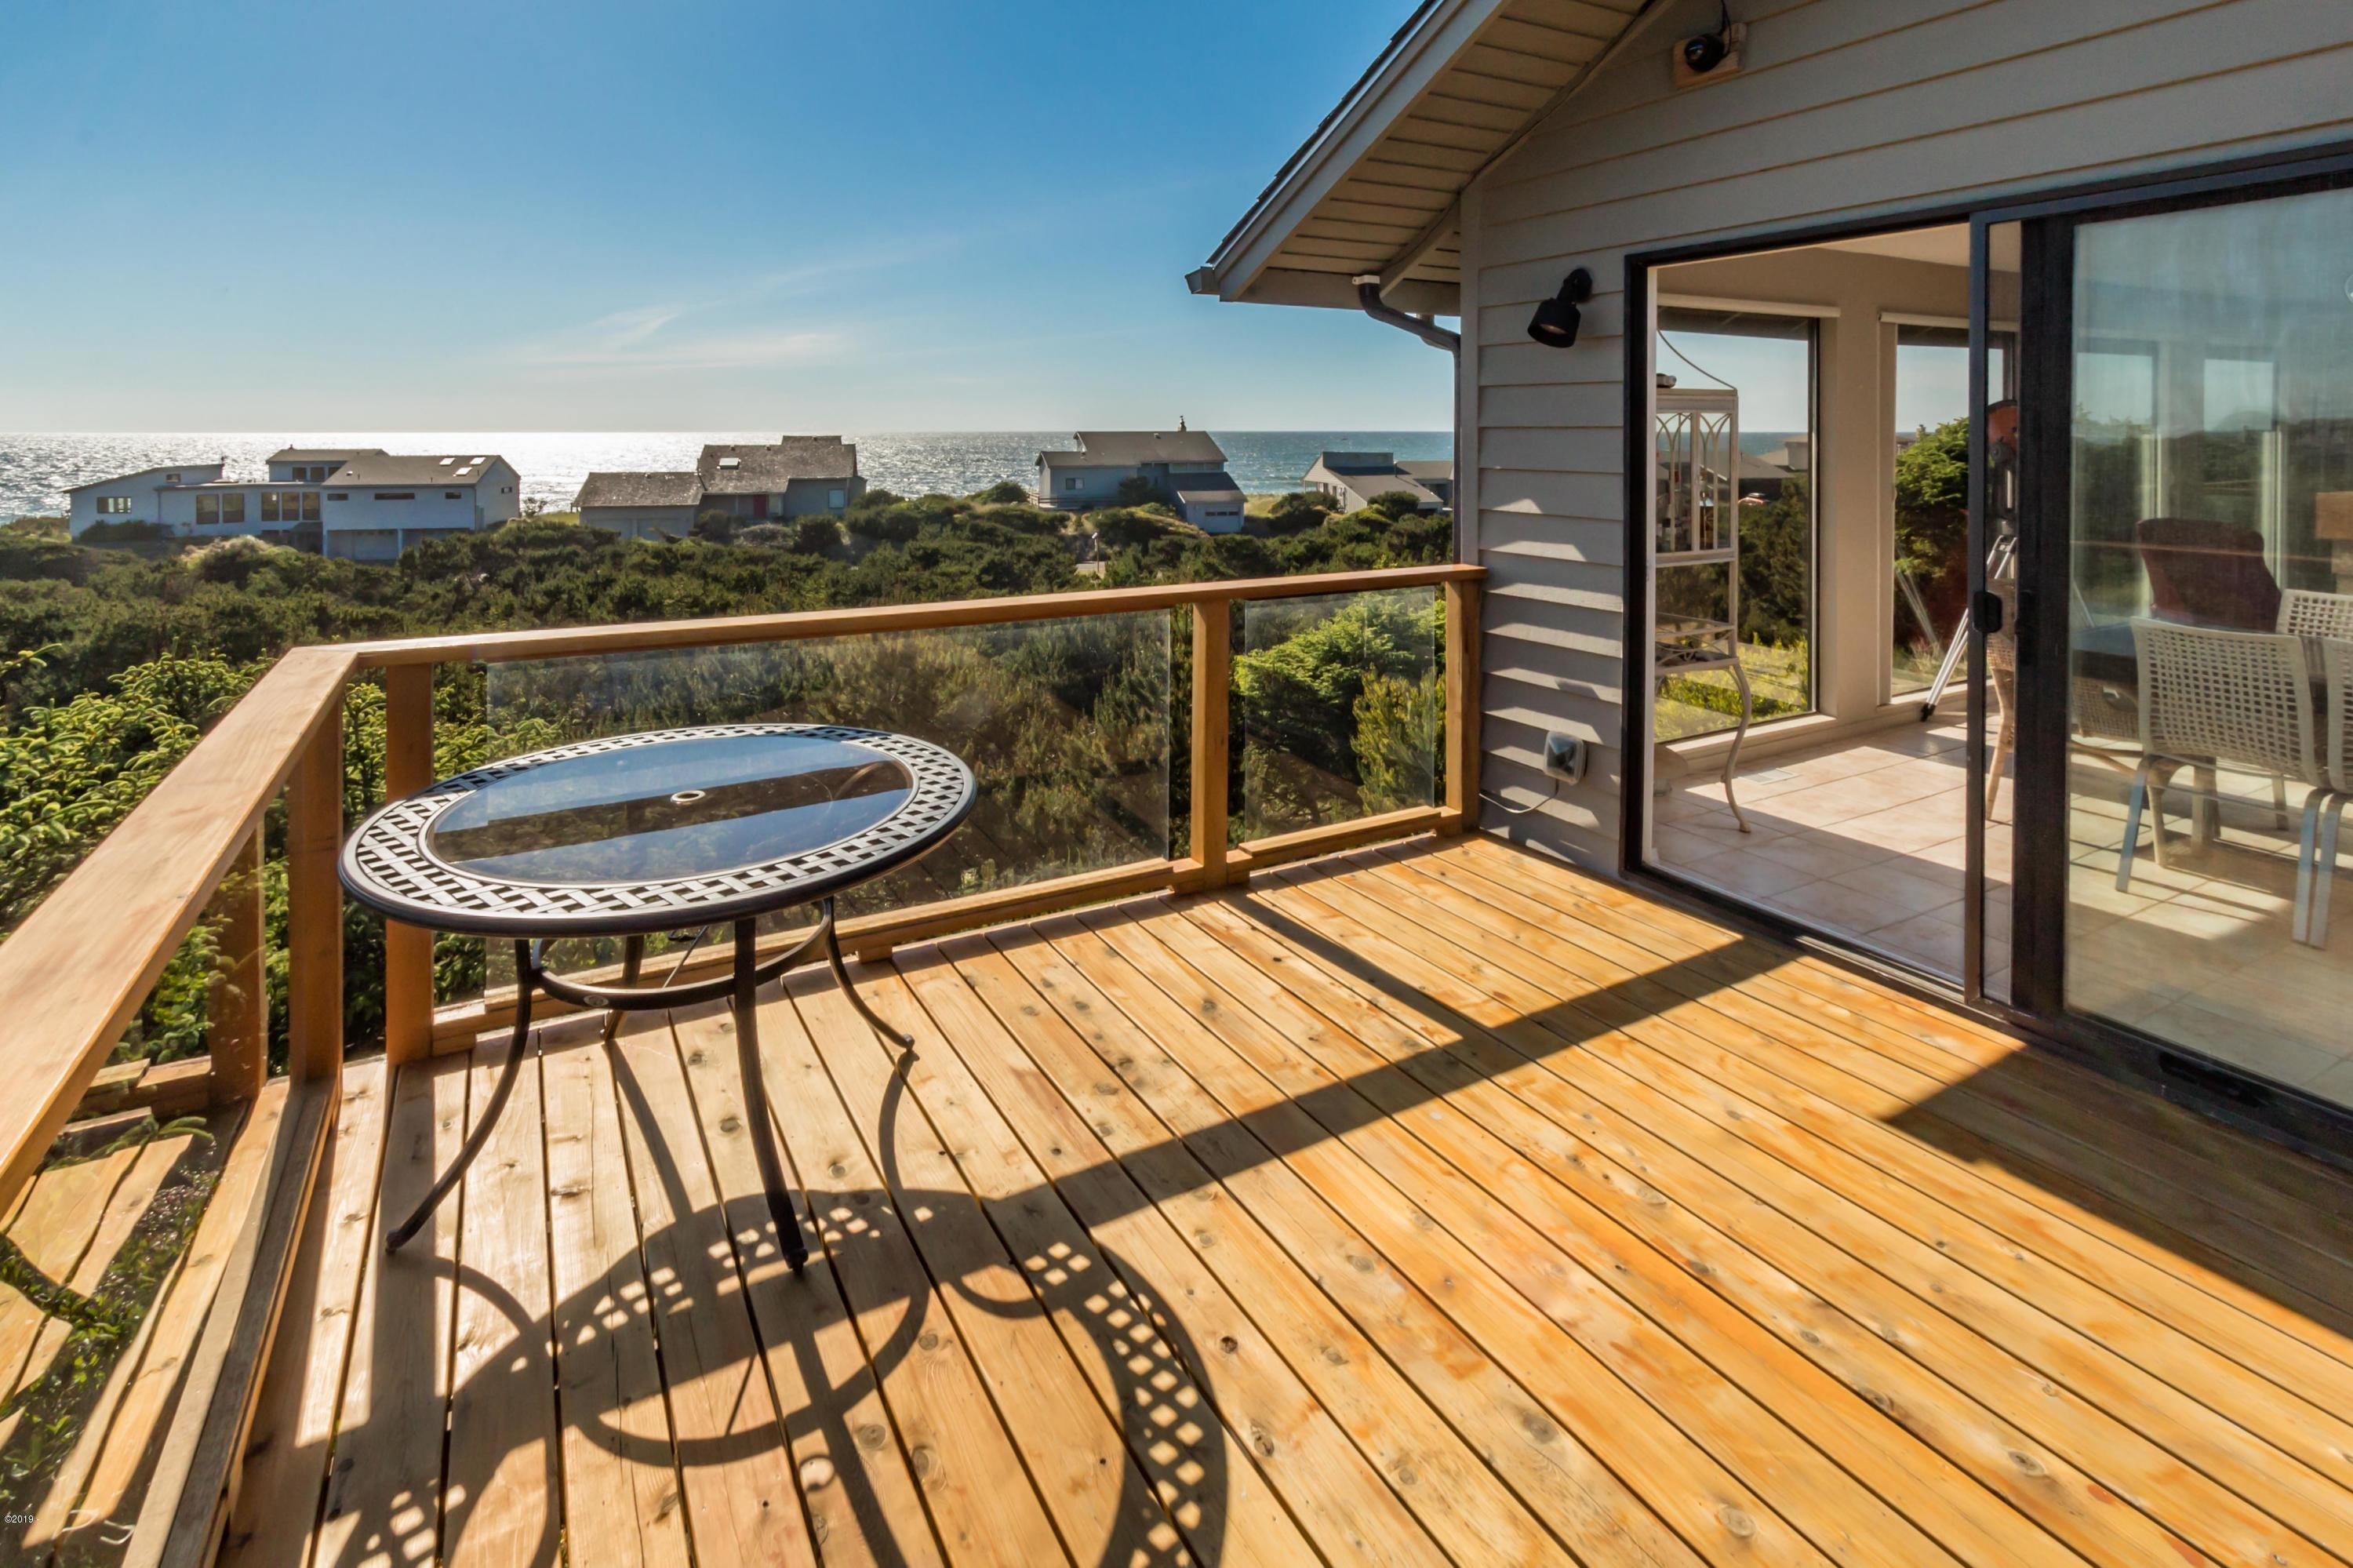 21 Dune Point Dr, Gleneden Beach, OR 97388 - Look at that Ocean View